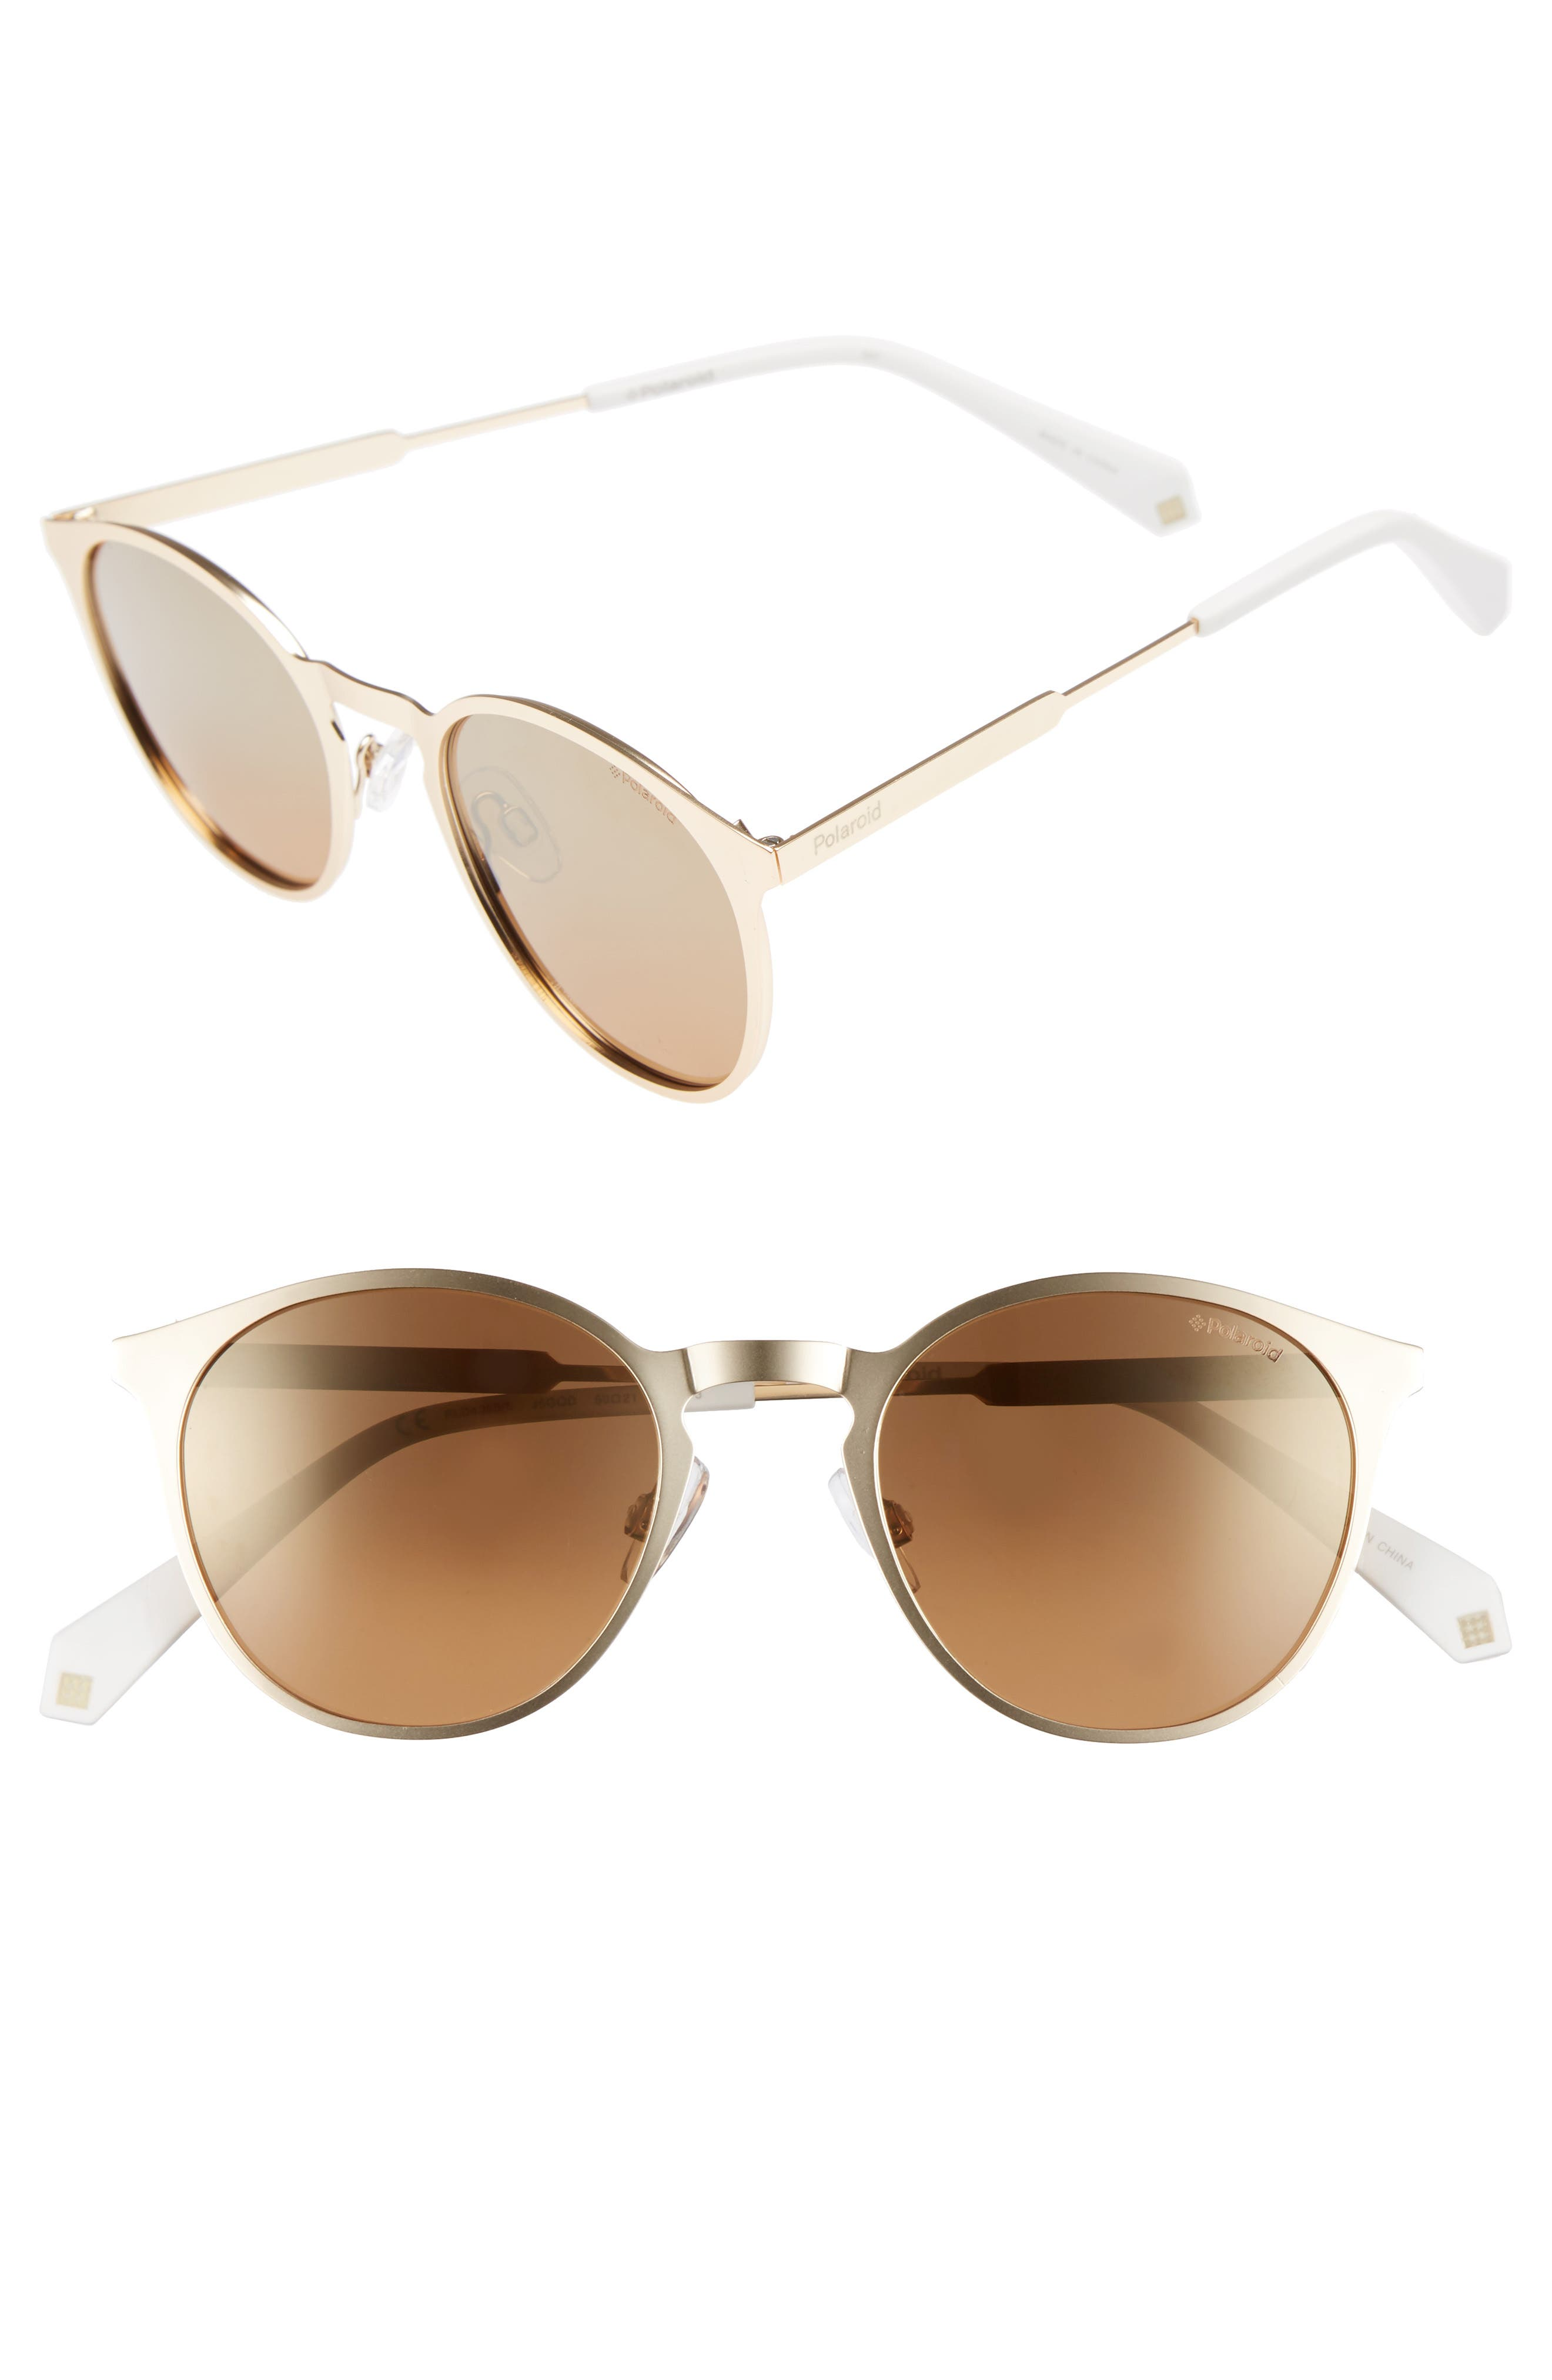 50mm Round Polarized Sunglasses,                             Main thumbnail 1, color,                             Gold